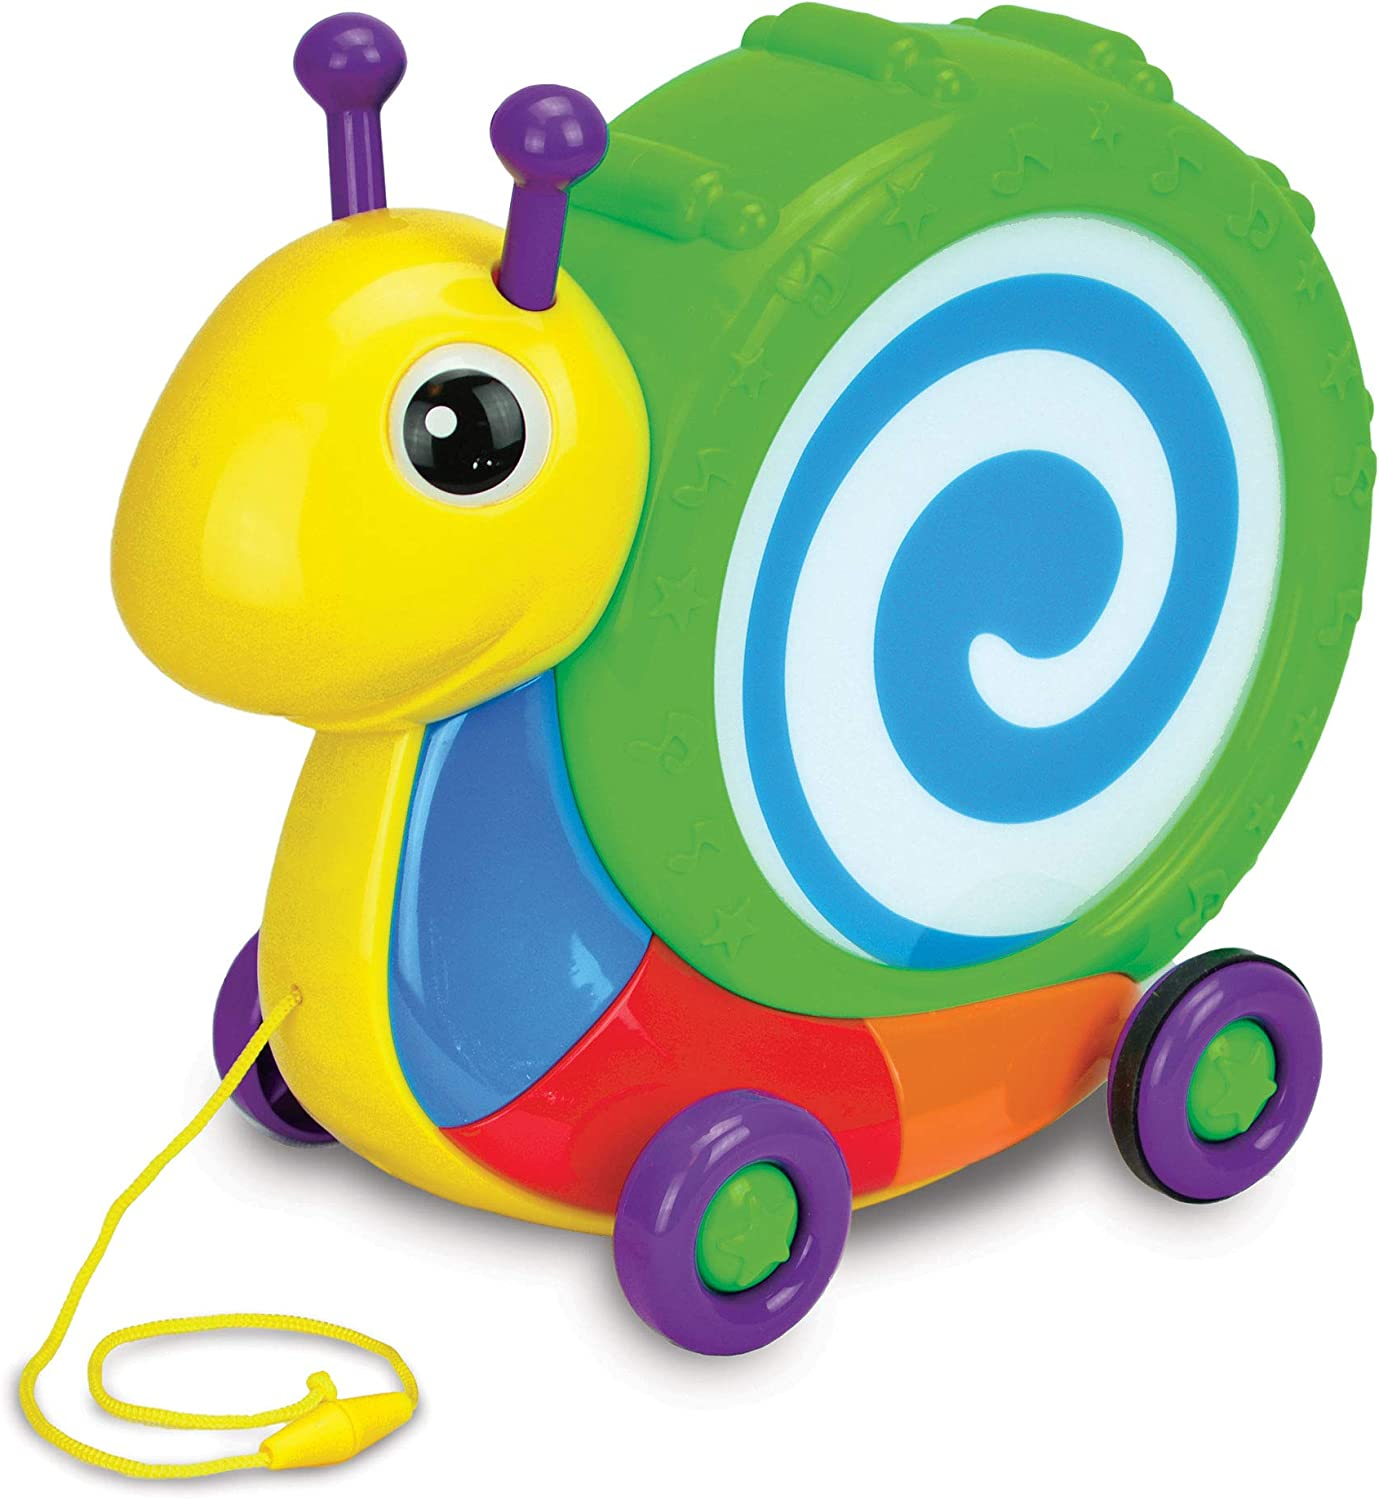 Janod Pull Along Snail Classic Early Learning Toy Ages 1+ Years Wooden 2-in1 Musical Instrument and Push and Pull Develops Fine Motor Skills Encourages Babies and Toddlers to Walk